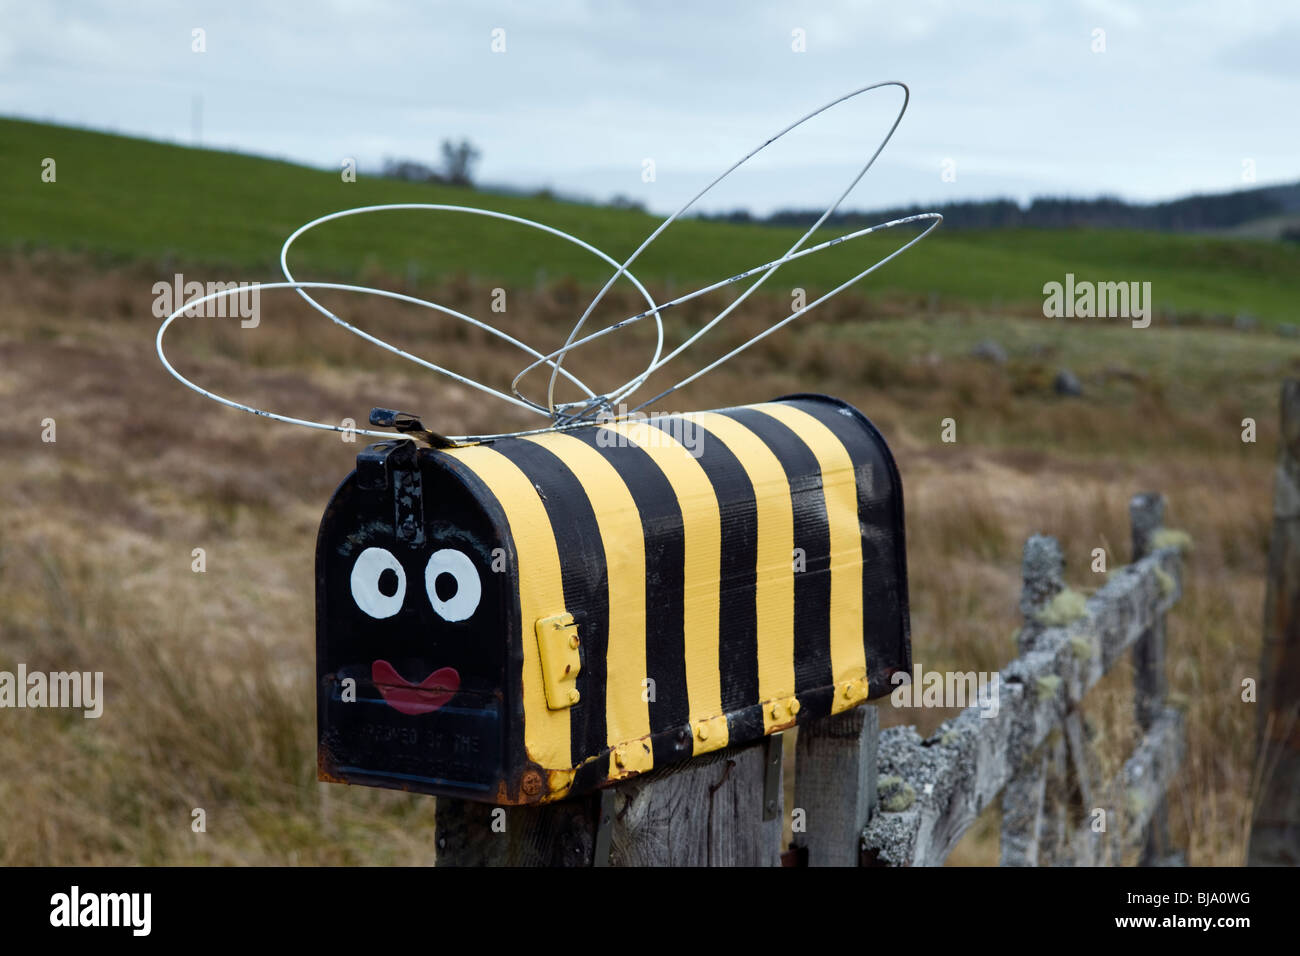 Personalised letter box on post painted in style of a bumble bee taken on the a839 near Lairg - Stock Image